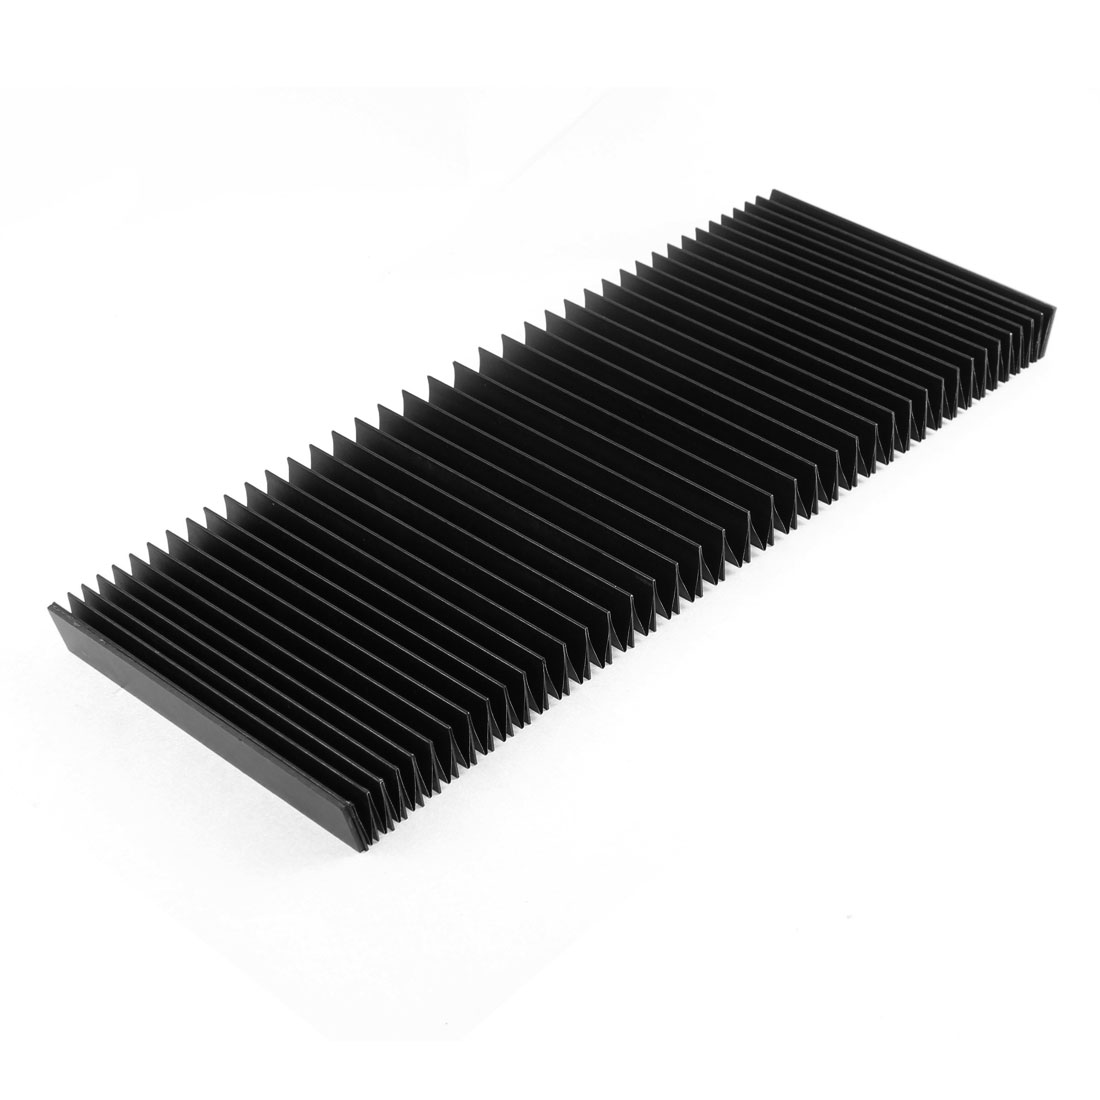 Protective Synthetic Rubber Rectangle Accordion Dust Cover 120cmx14cmx2cm